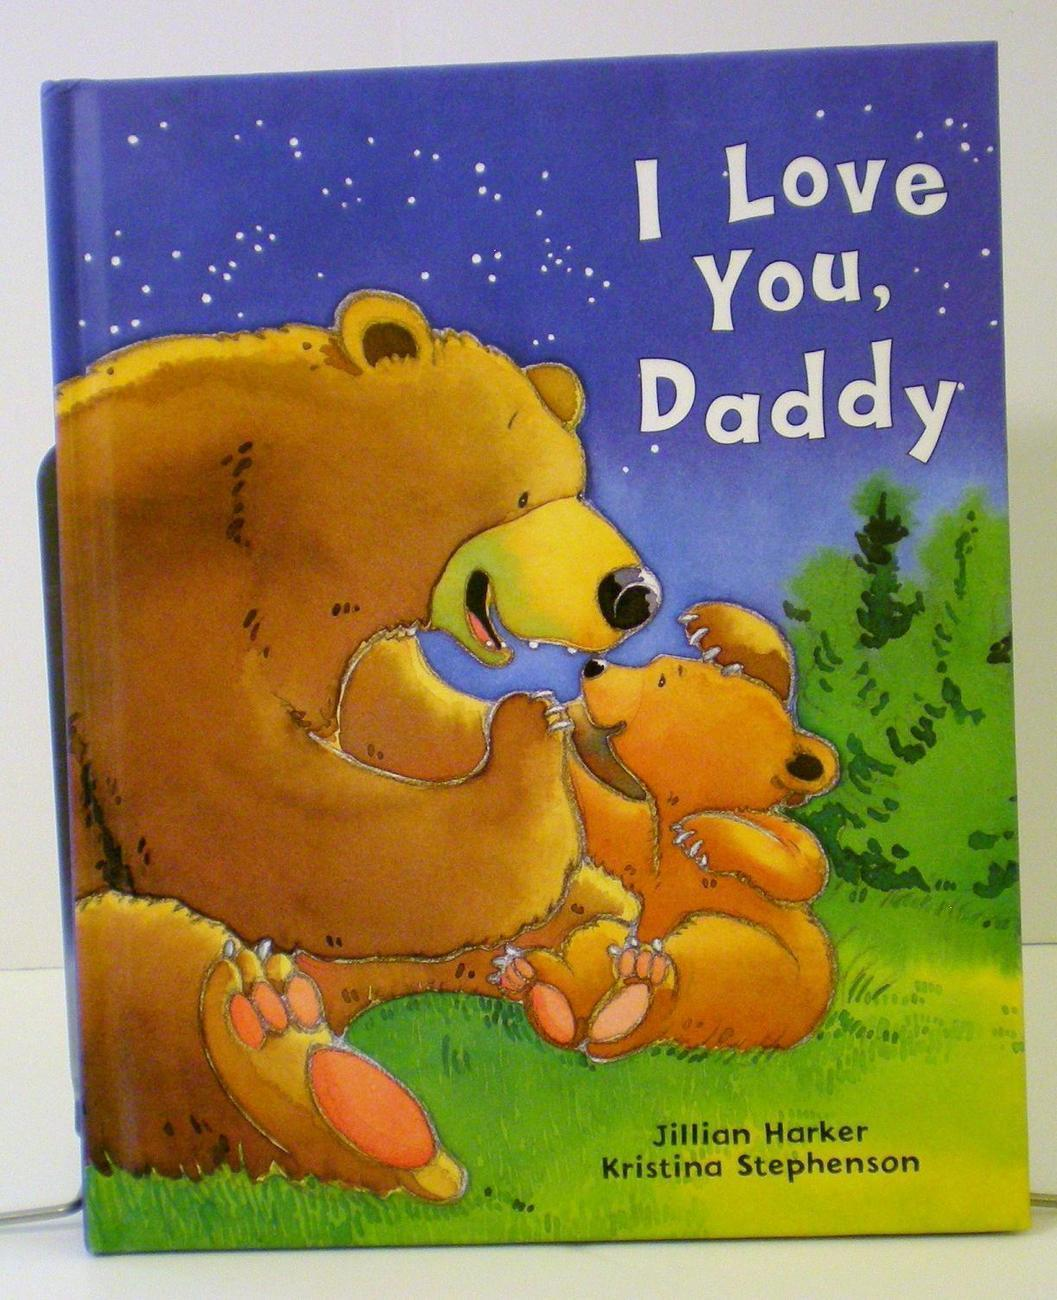 I Love You Daddy by Jillian Harker child HB 2004